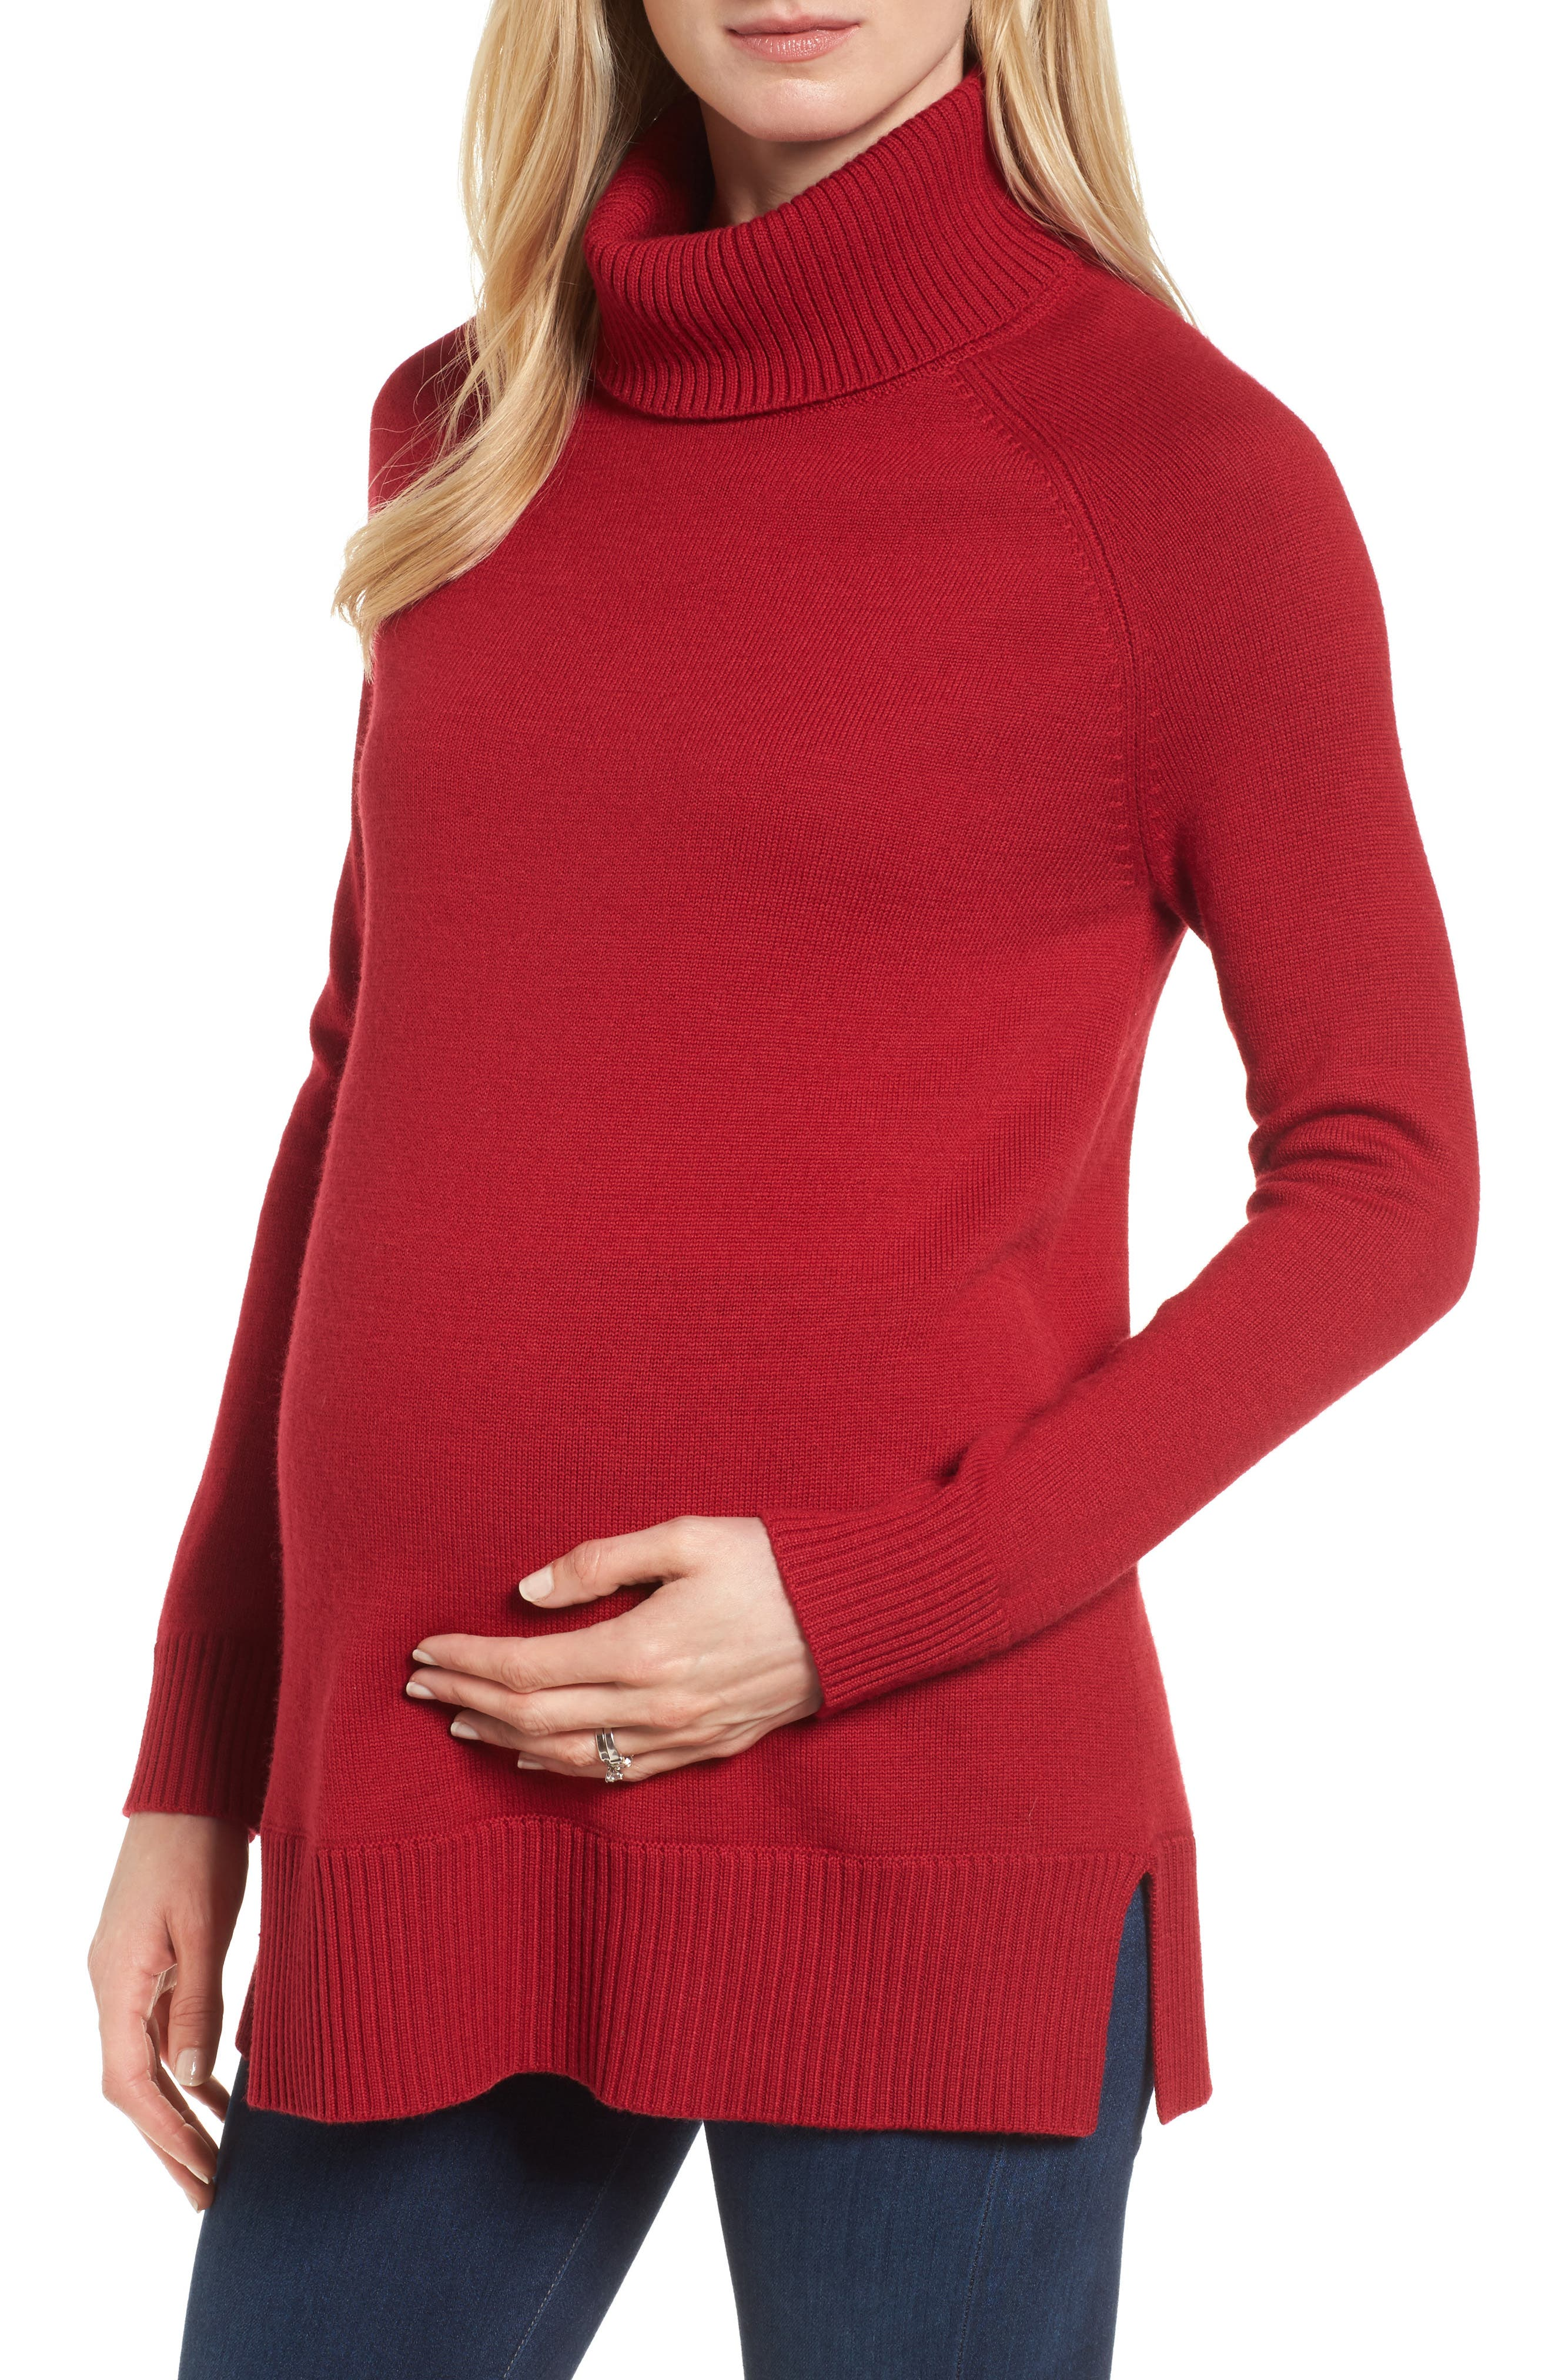 Isabella Oliver Tessa Turtleneck Wool Maternity Sweater, Red